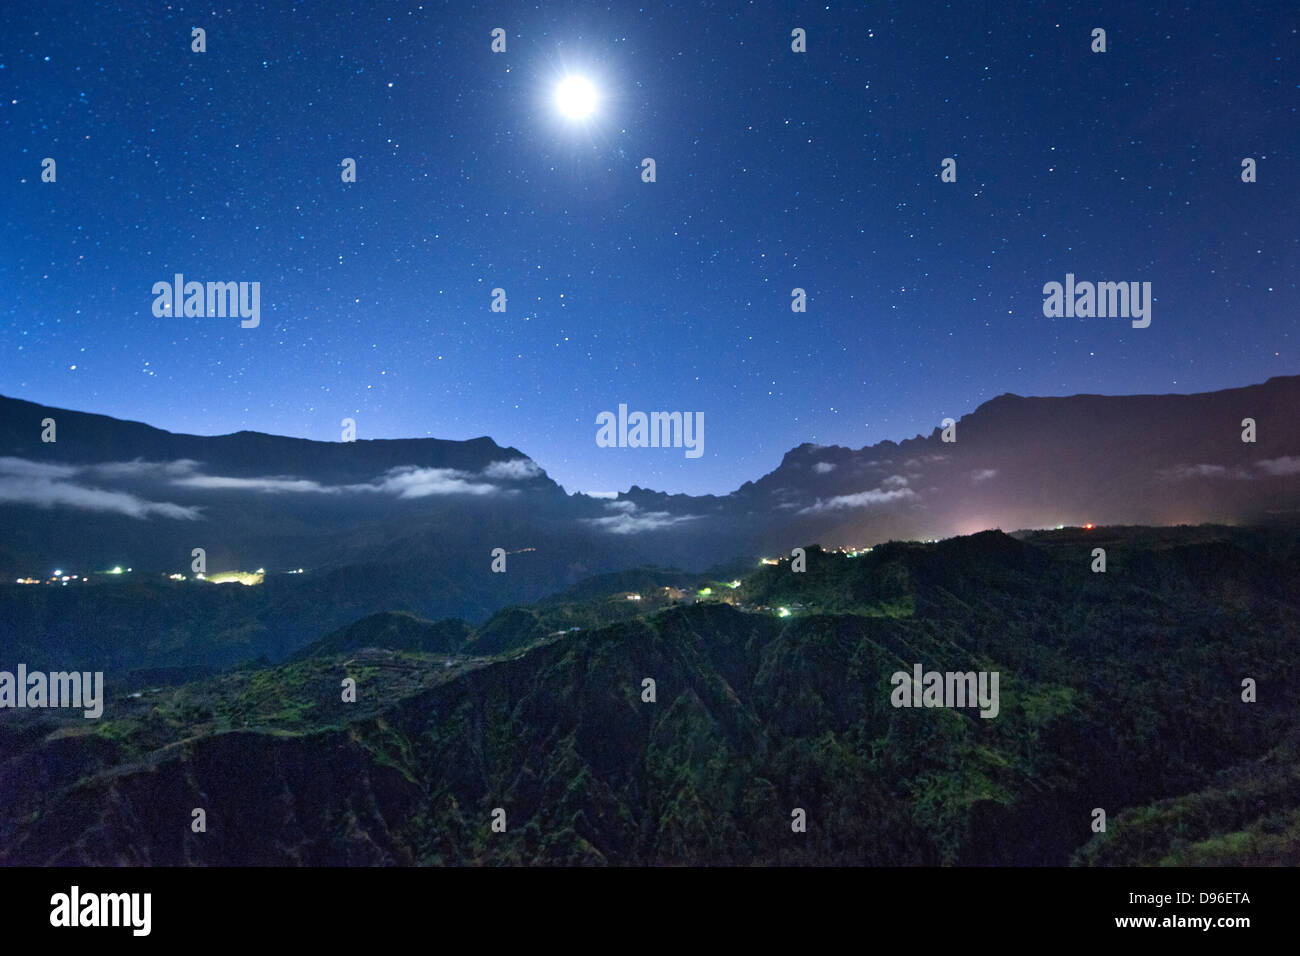 Night view of stars and the moon above the Cirque de Cilaos caldera on the French island of Reunion in the Indian - Stock Image